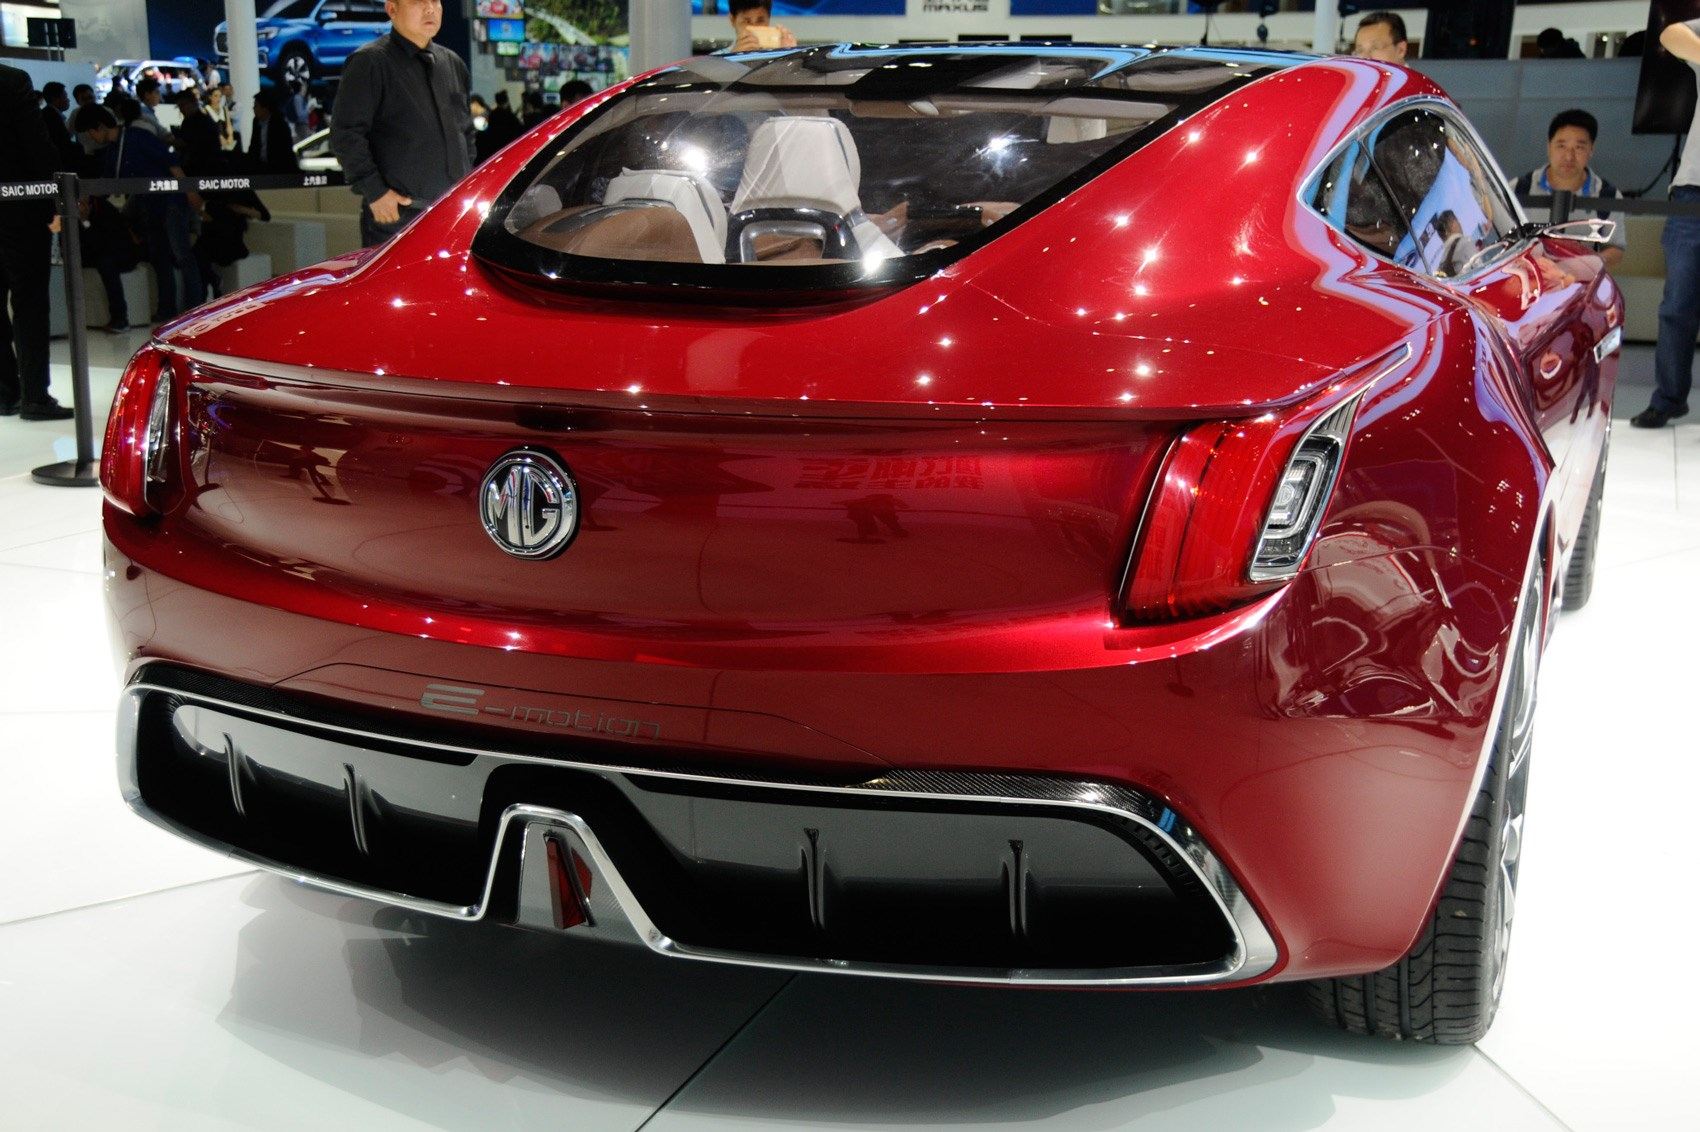 All-electric MG E-motion Concept Is Supercar For